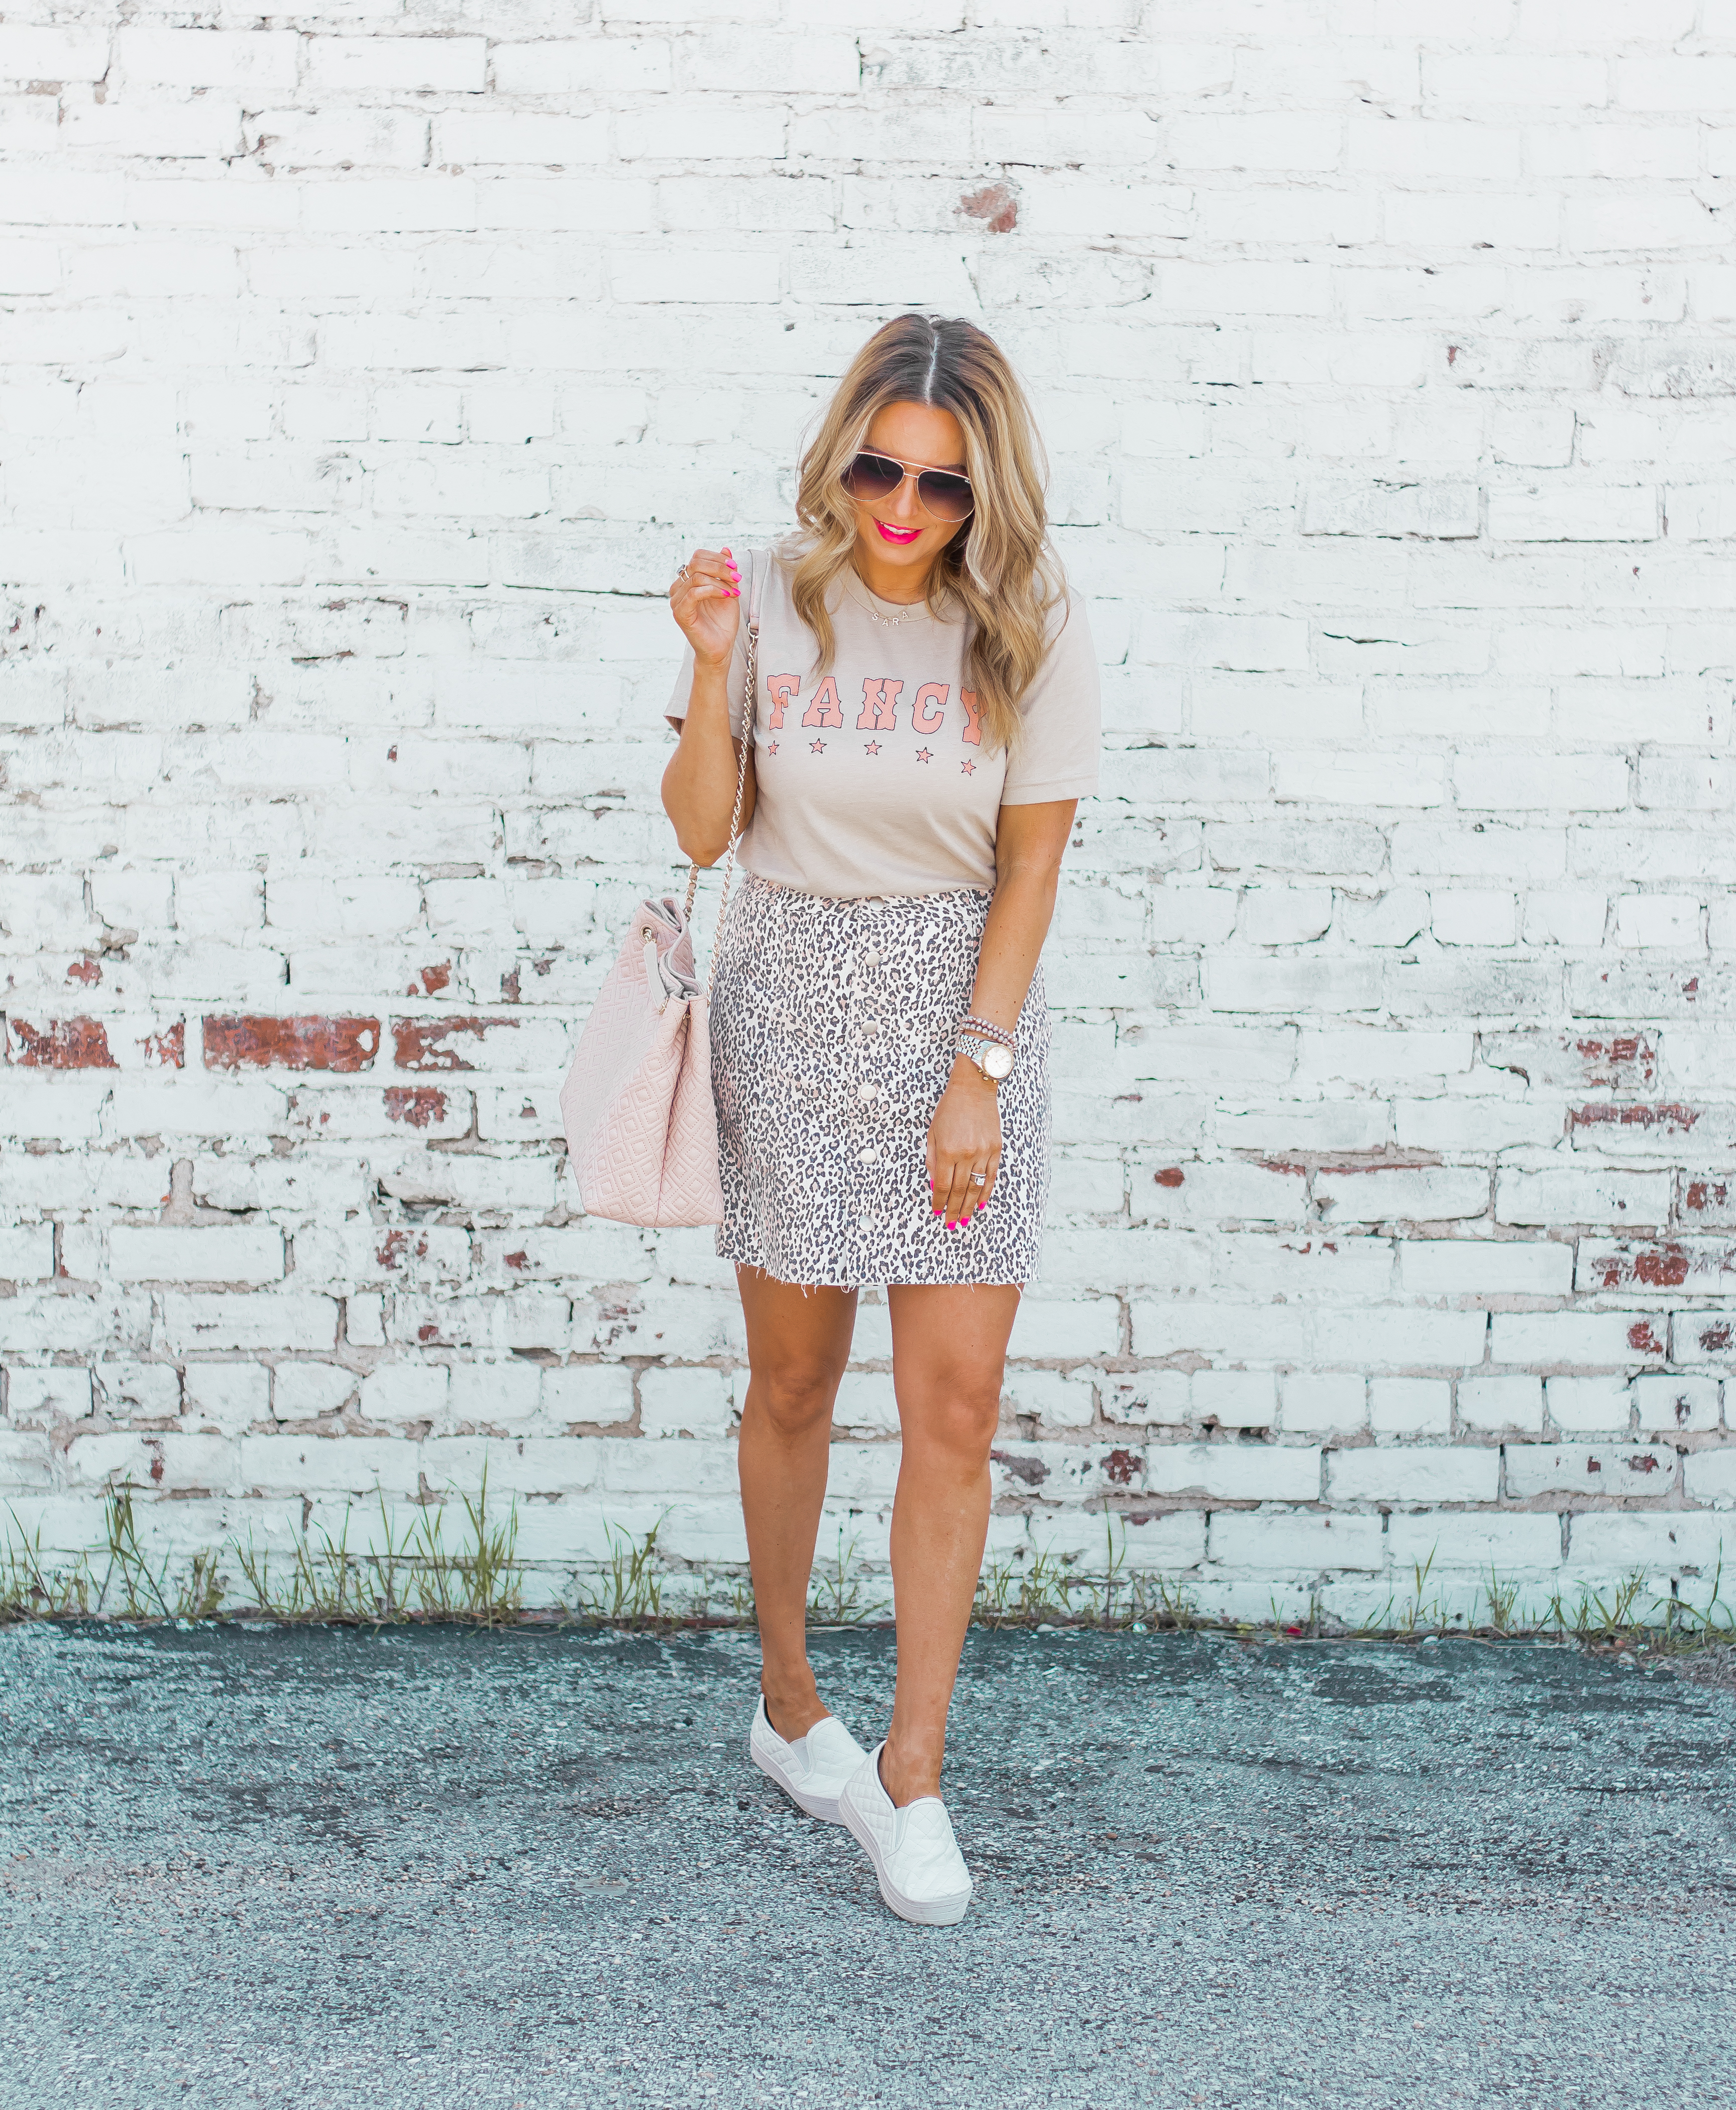 Fancy Graphic Tee-Leopard Skirt-Sugar Boutique-$250 Gift Card Giveaway-Tory Burch Fleming Bag-Quay Sunglasses-Sabby Style-Omaha Blogger-Women's Fashion-Spring Fashion-Summer Outfit-15